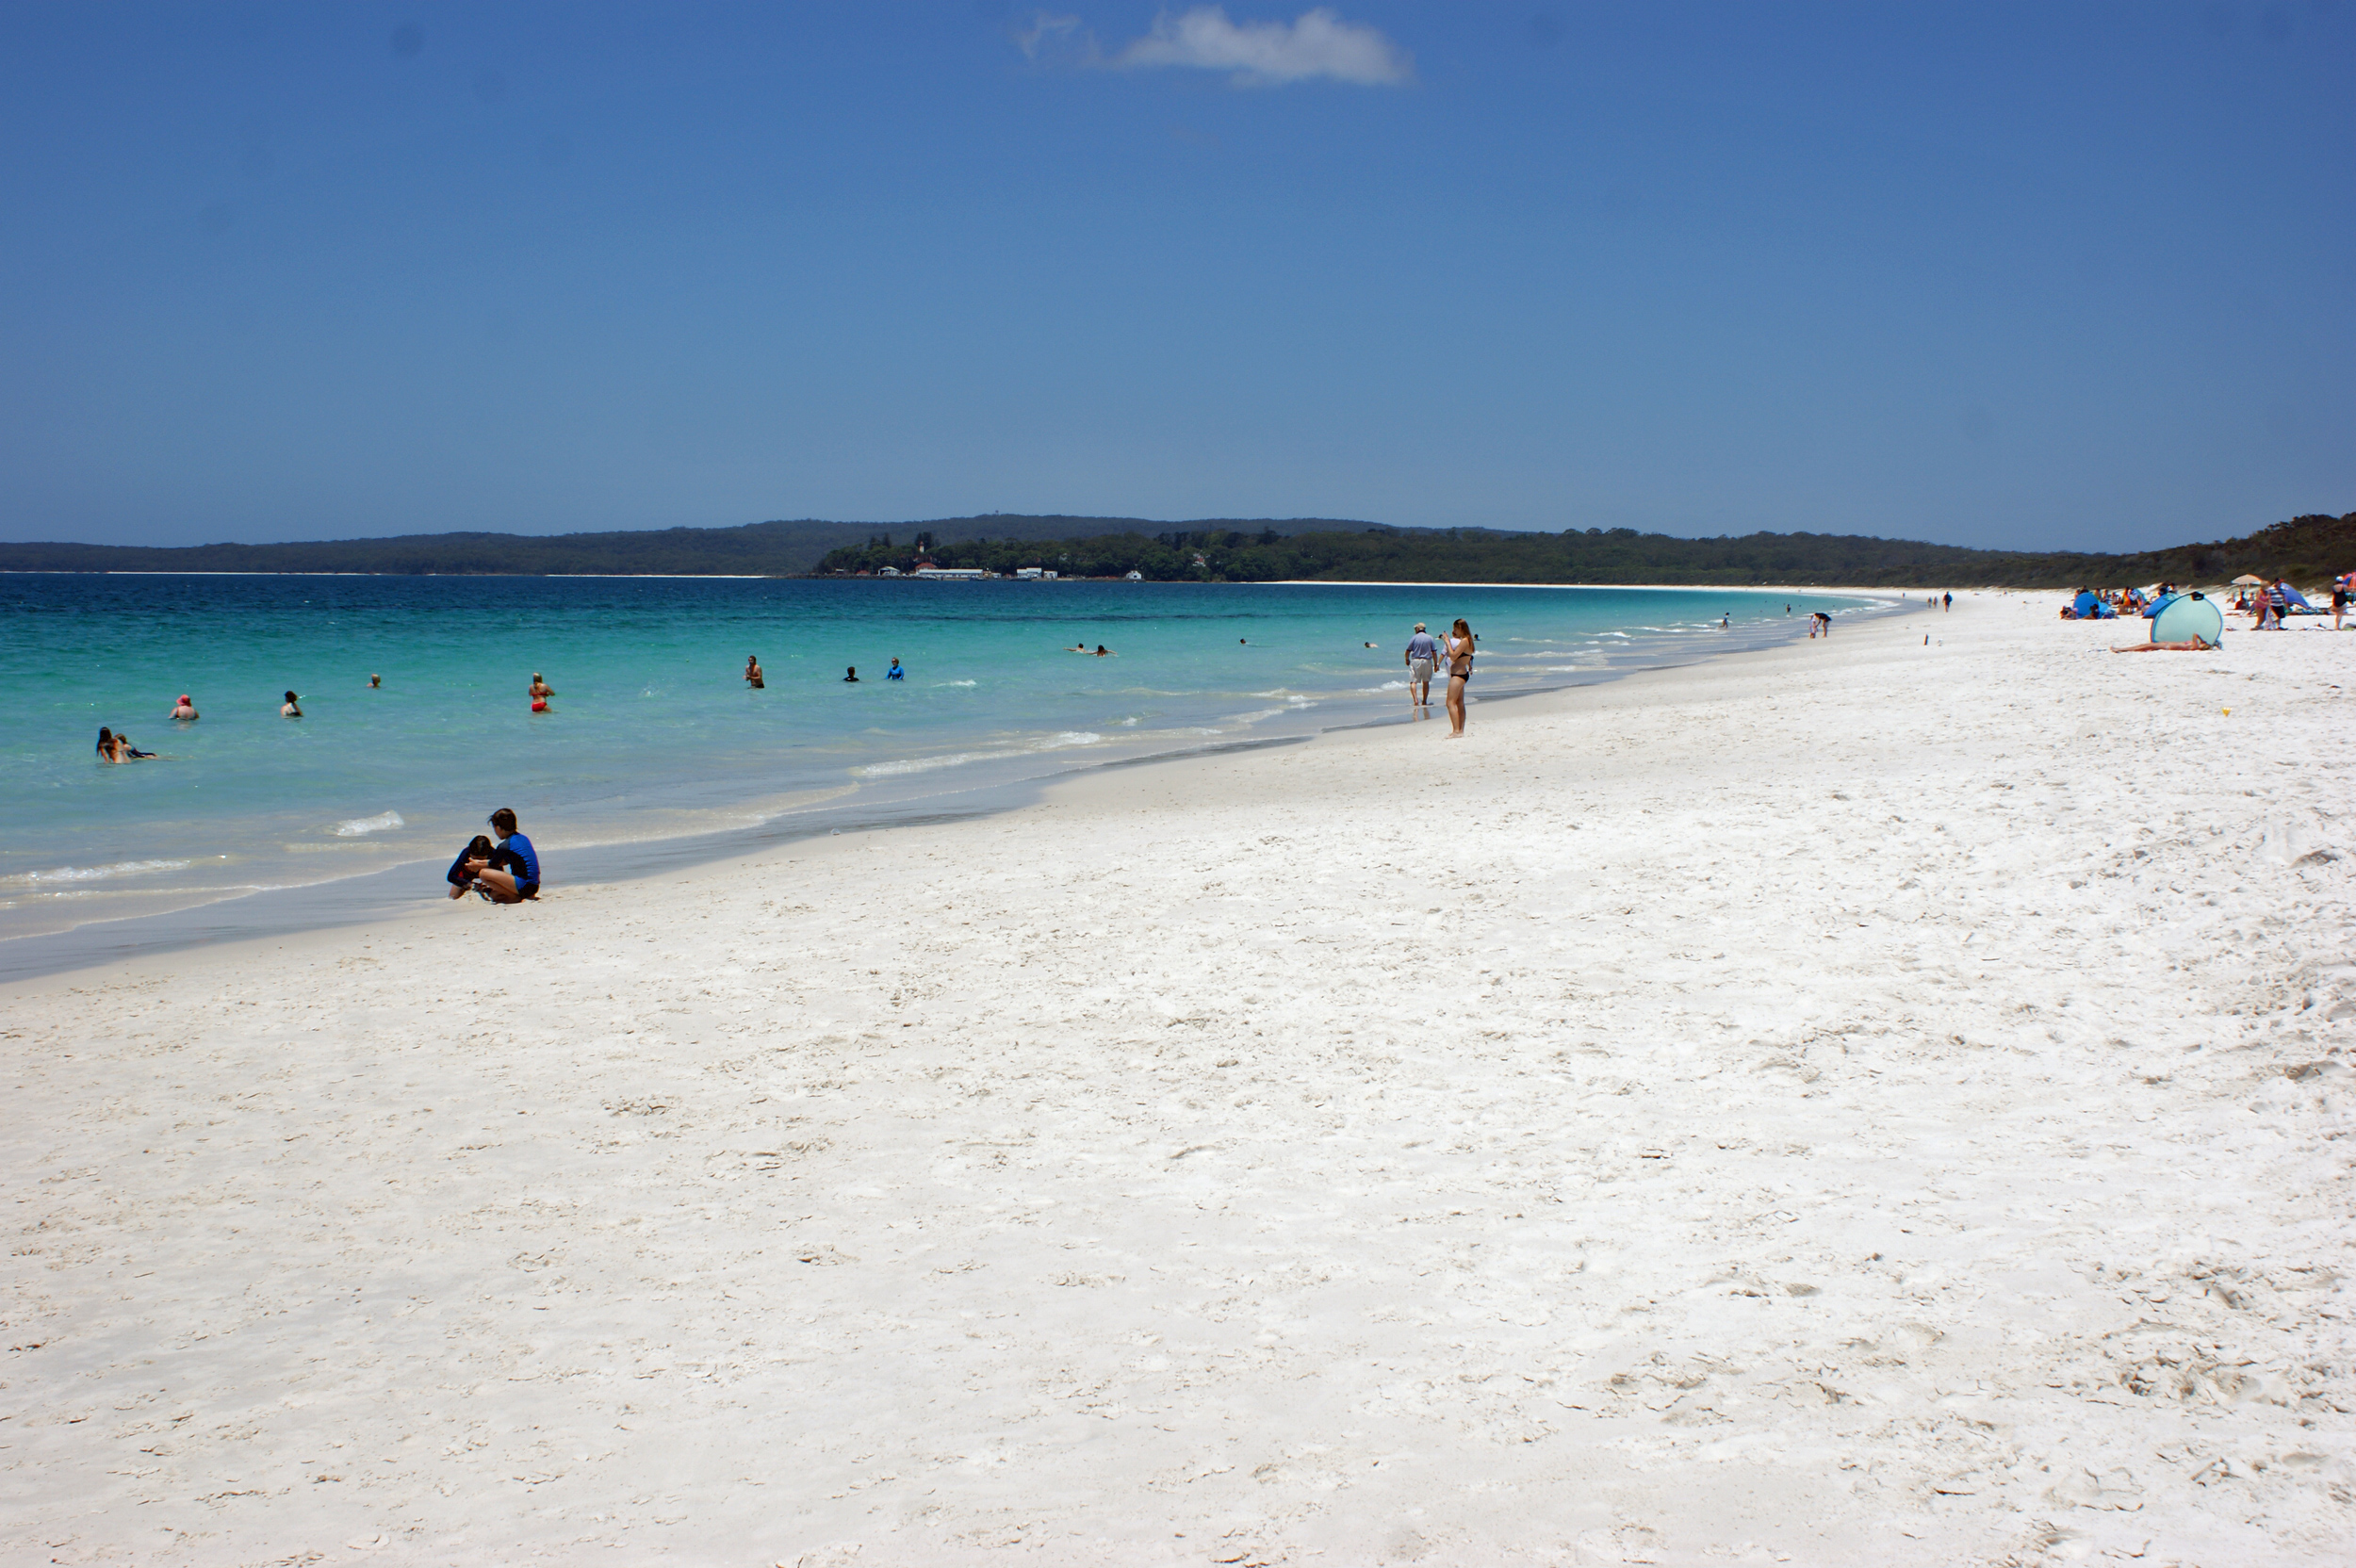 Hyams Beach By albinfo (Own work) [CC-BY-SA-3.0 (https://creativecommons.org/licenses/by-sa/3.0)], via Wikimedia Commons